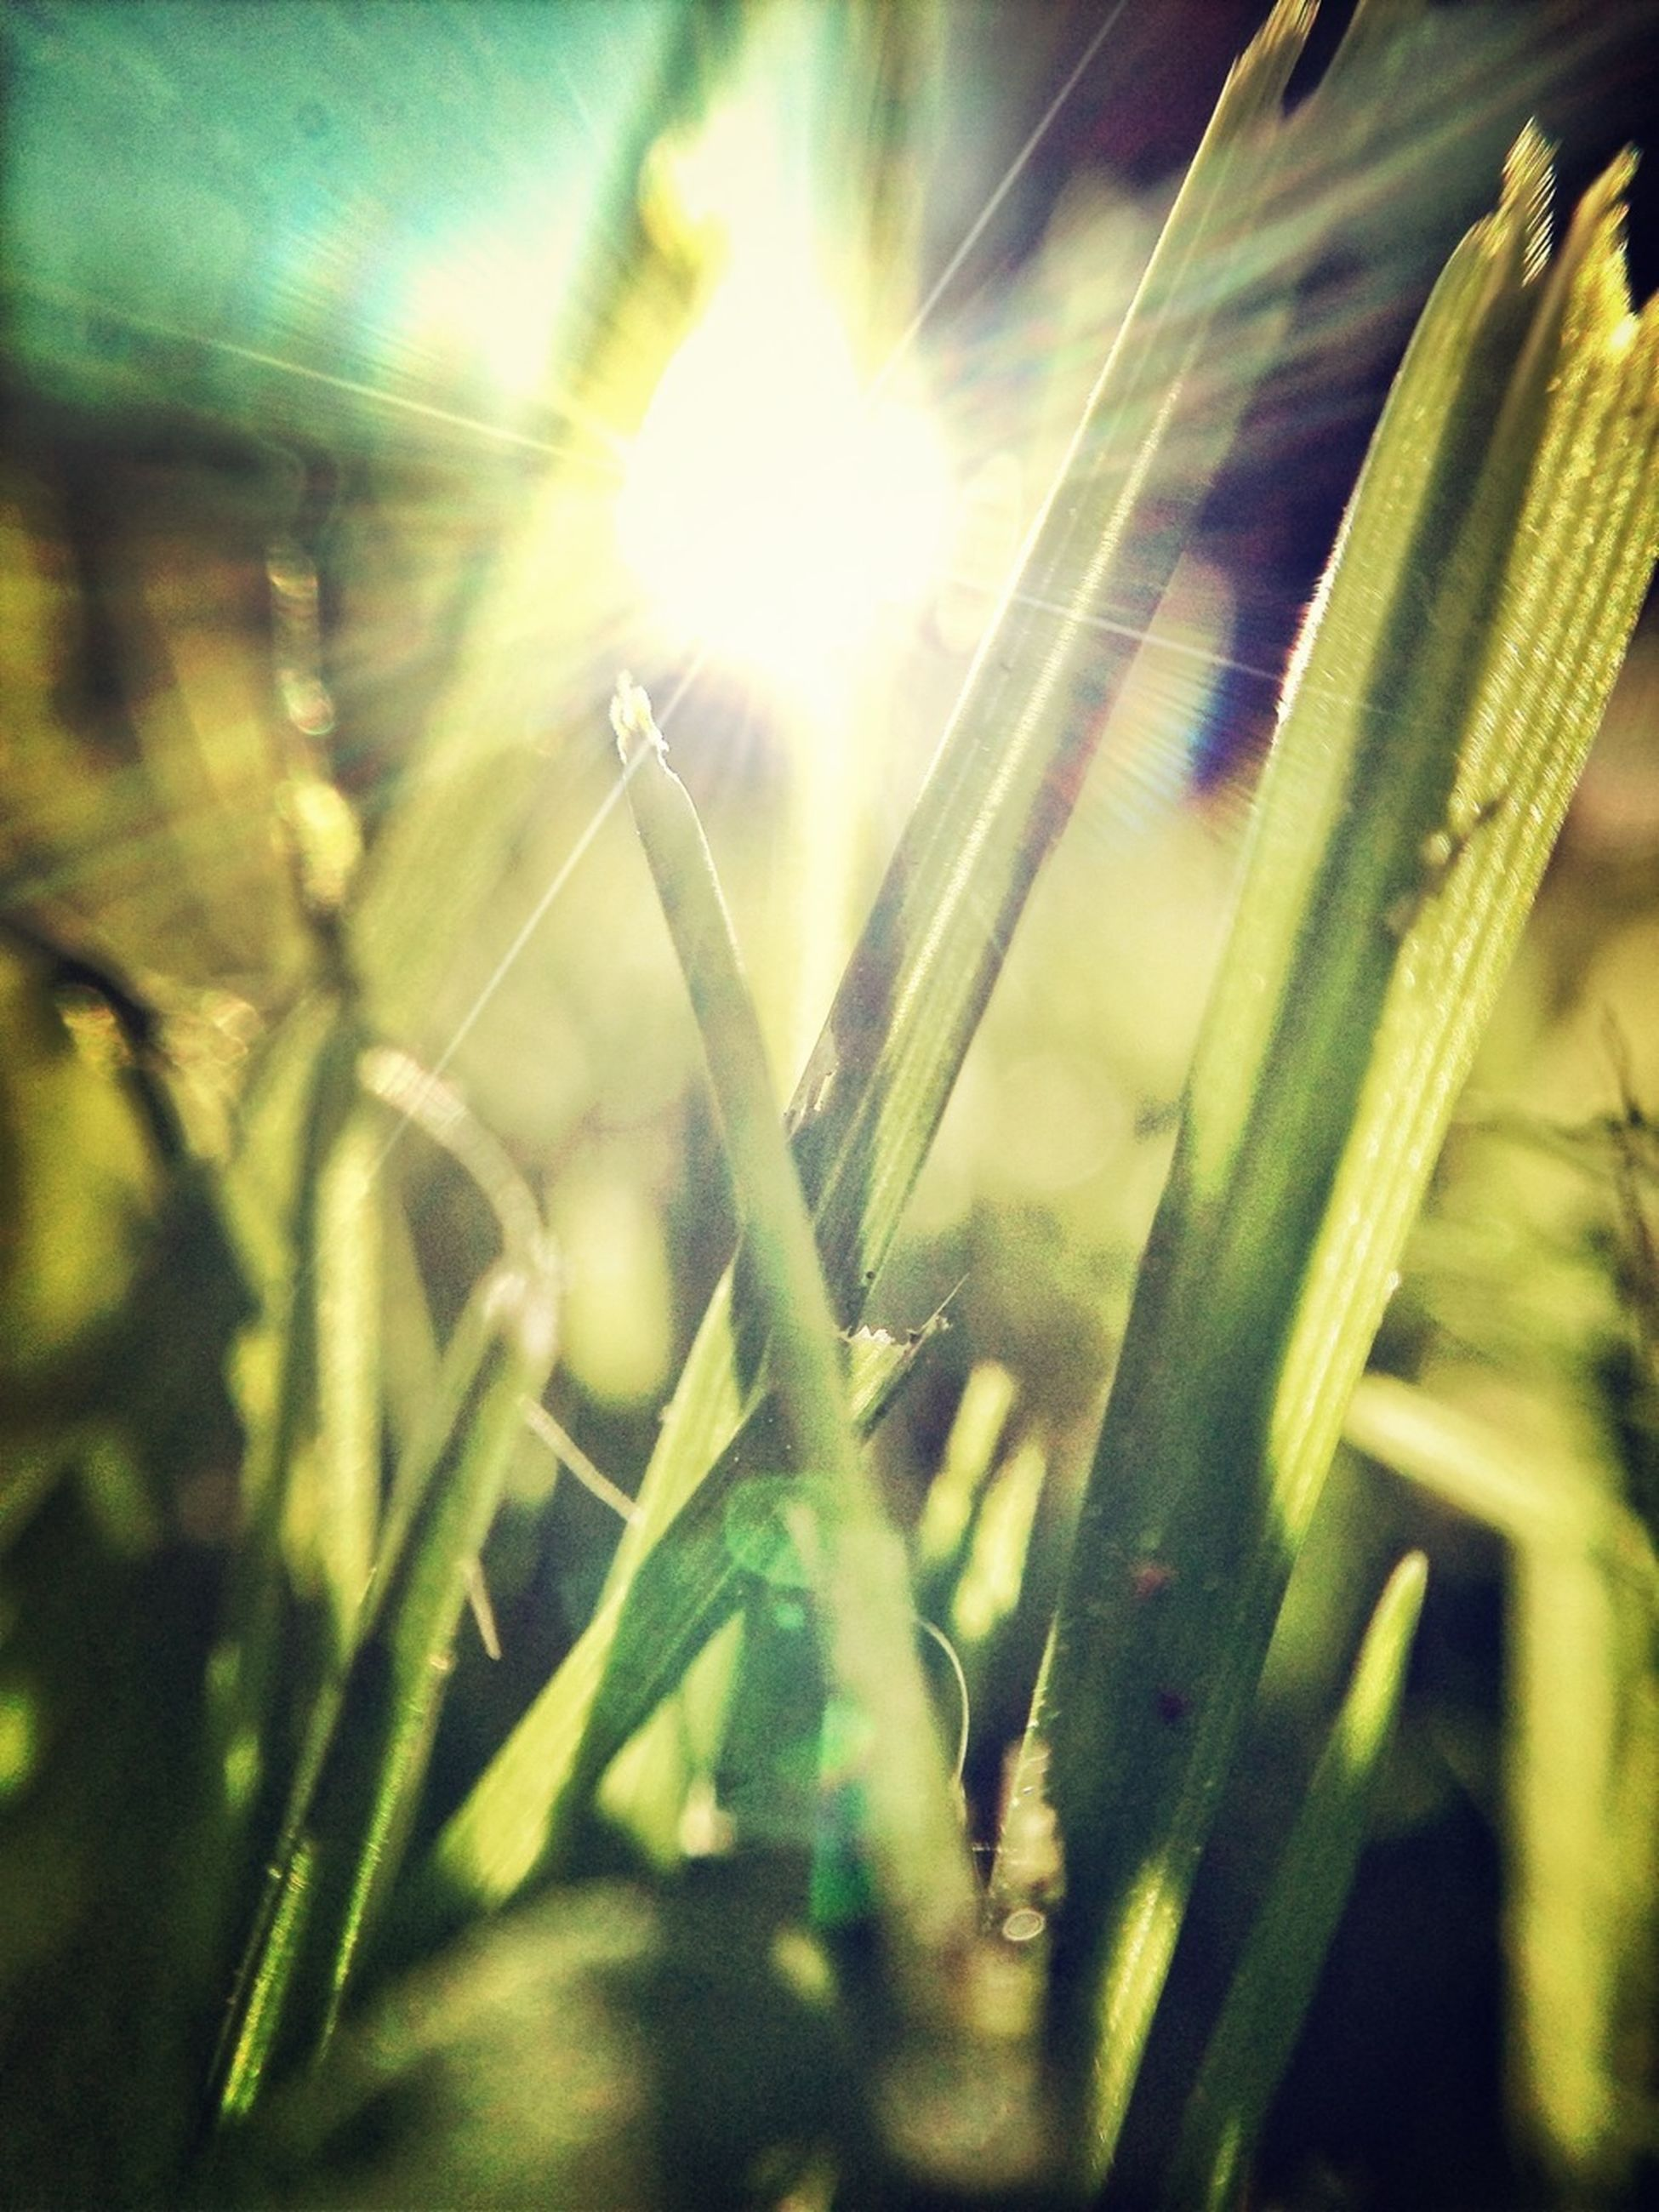 growth, plant, sun, sunlight, lens flare, sunbeam, close-up, nature, green color, focus on foreground, grass, selective focus, beauty in nature, blade of grass, field, leaf, growing, outdoors, tranquility, day